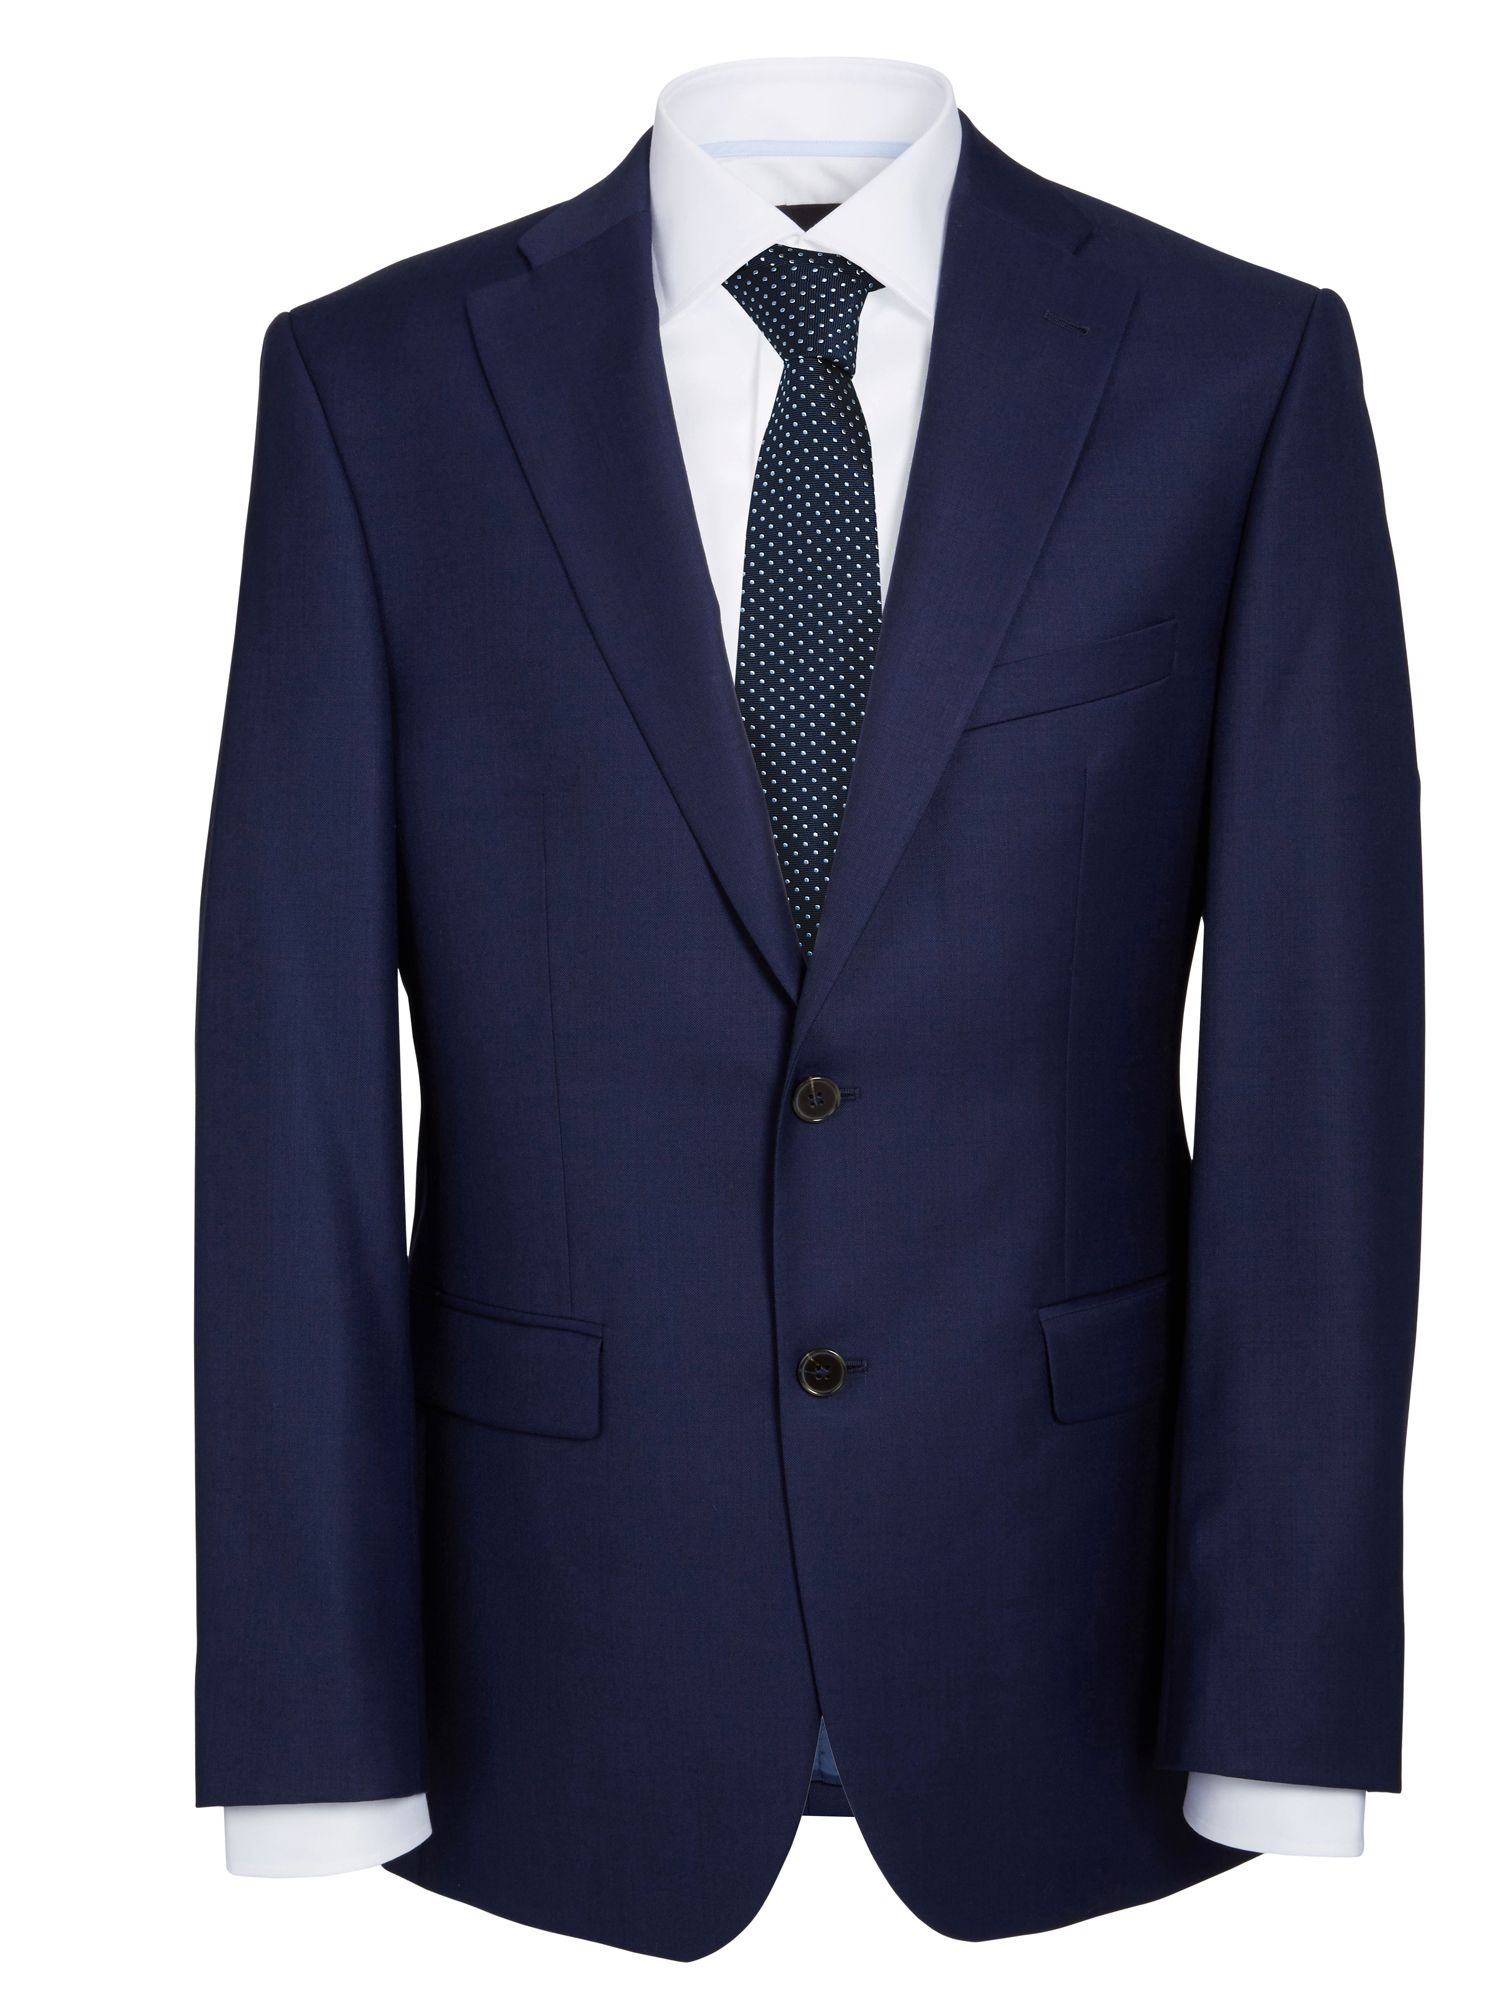 Semi-Plain wool single breasted suit